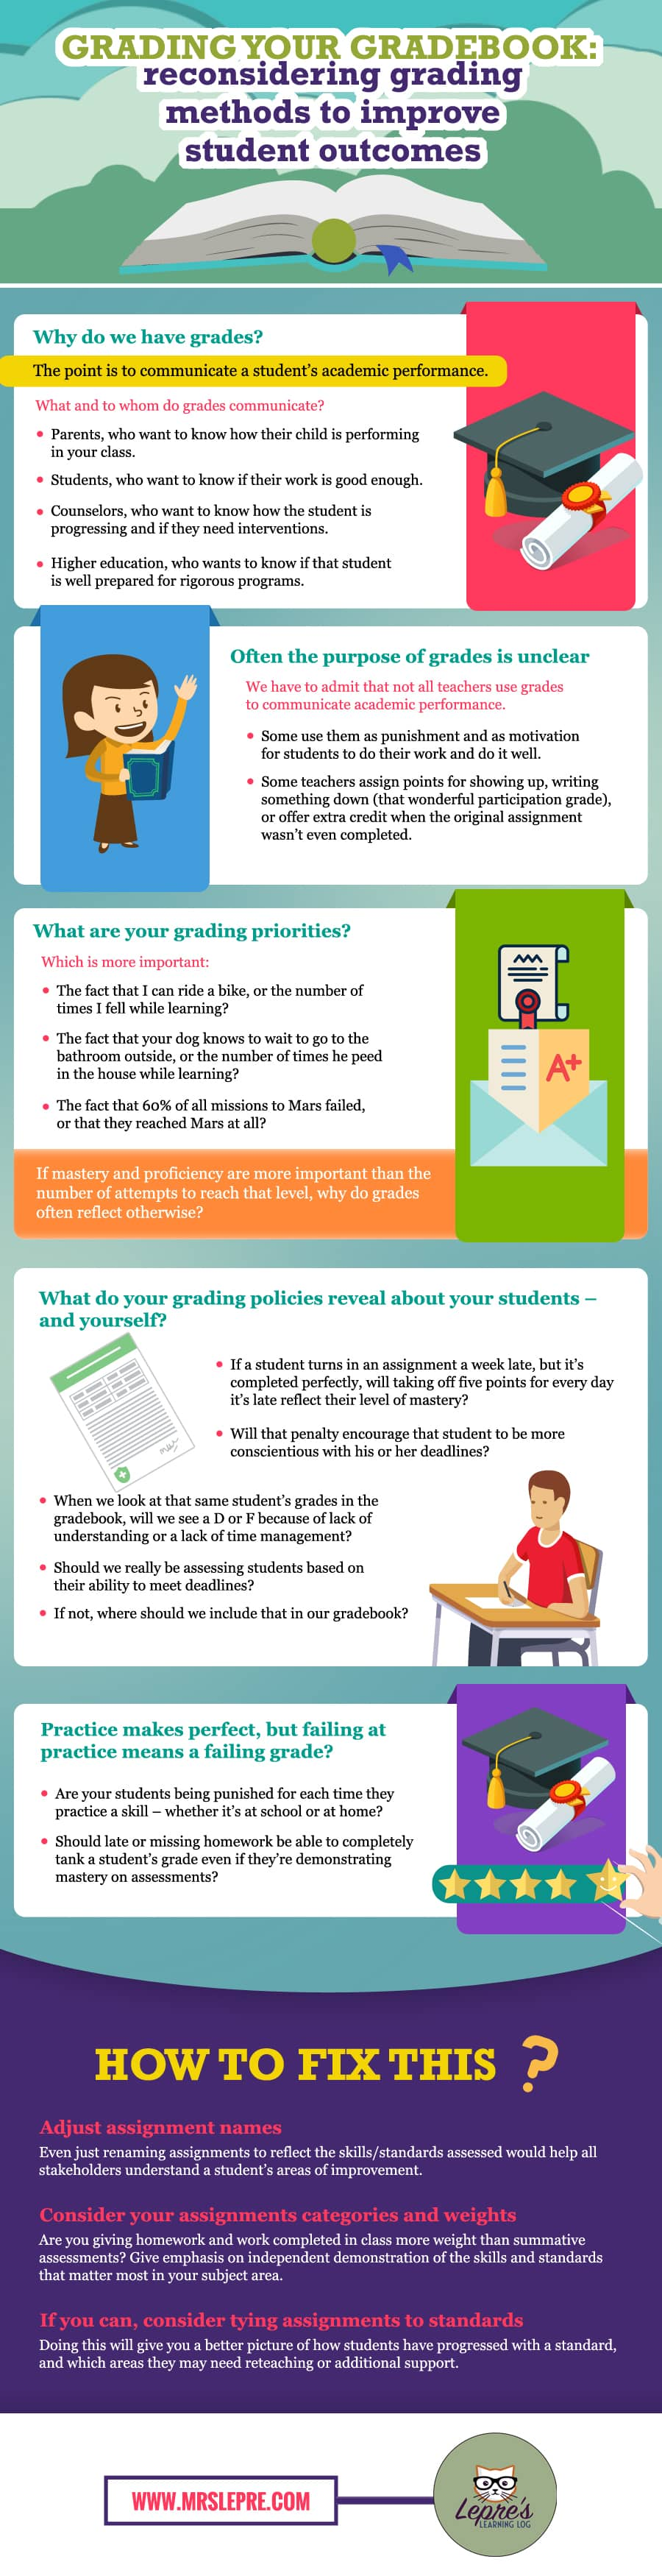 Are your grading policies serving your students? Grades should reflect student learning and progress, not their ability to meet deadlines. standards based grading | grading methods | how I grade | why I grade | what is the point of grades | how to grade